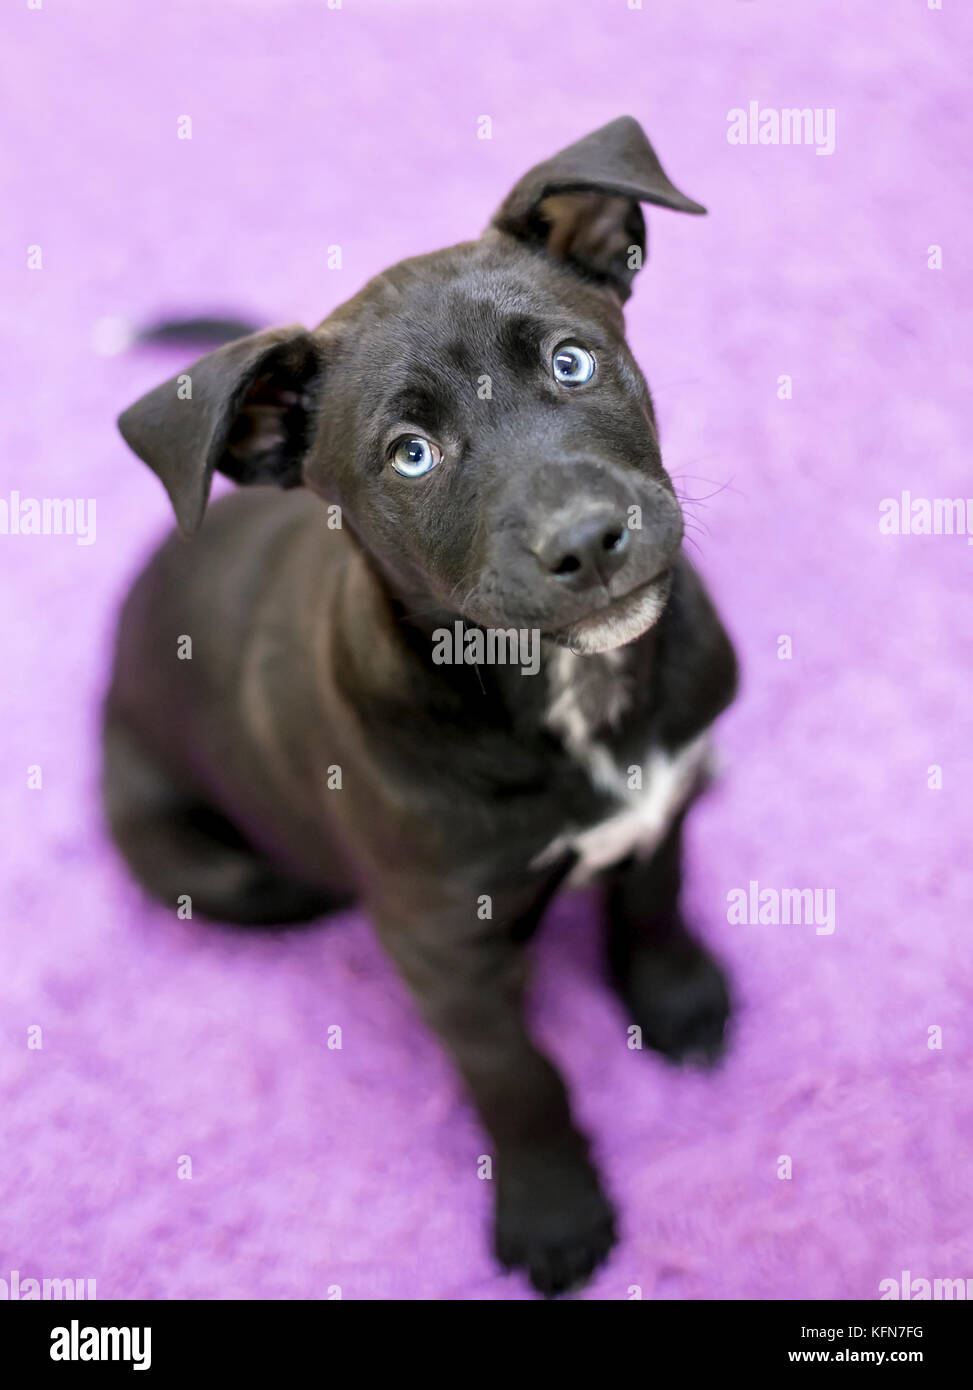 A cute black and white mixed breed puppy with blue eyes looking up - Stock Image